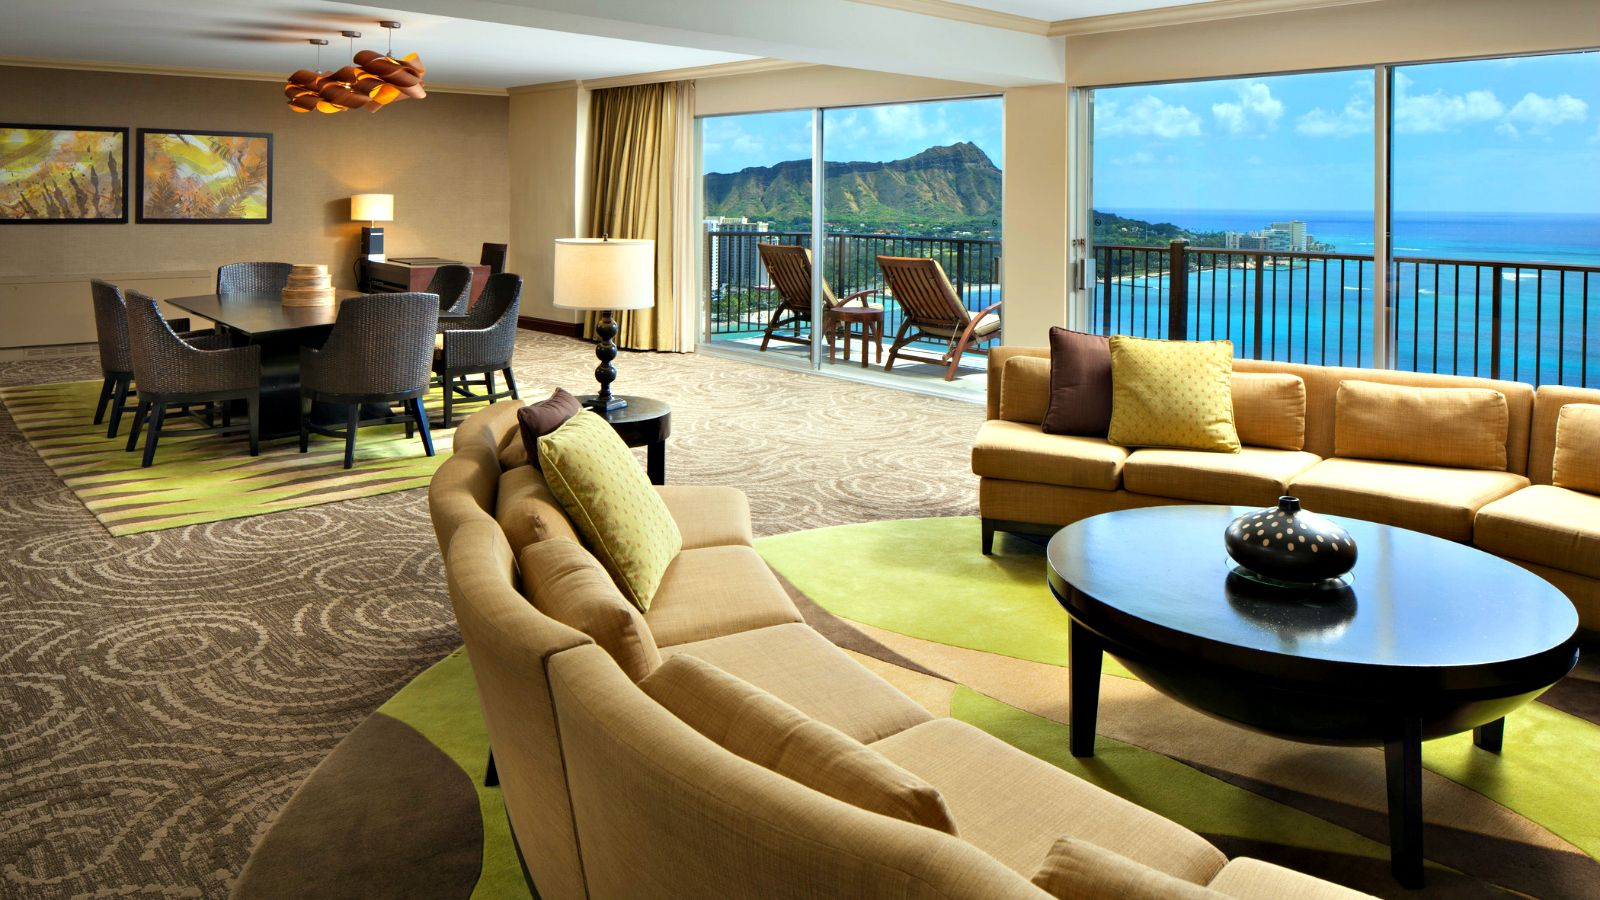 Honolulu oahu resorts sheraton waikiki hotel for Room design hd image